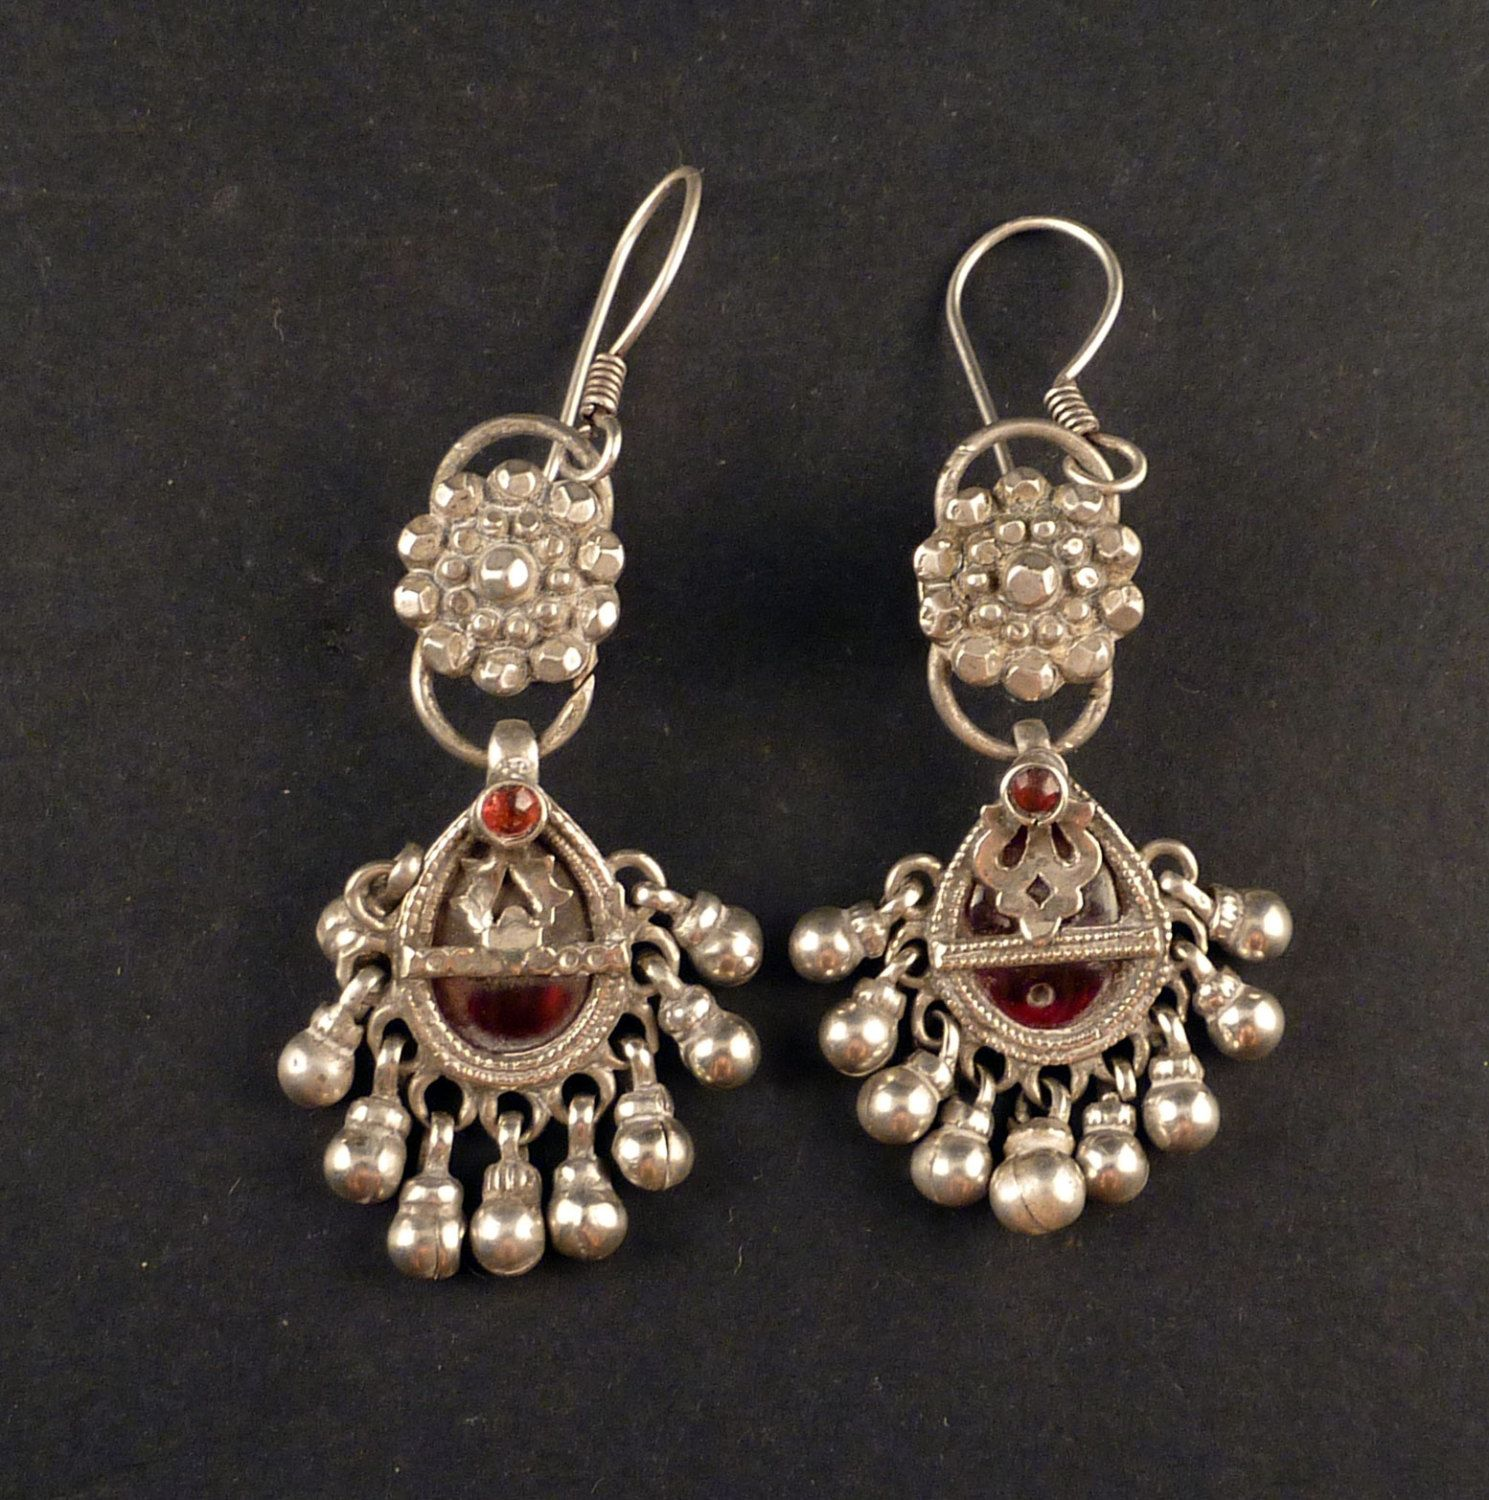 rajasthani hanging buy black ozanoo earrings traditional product